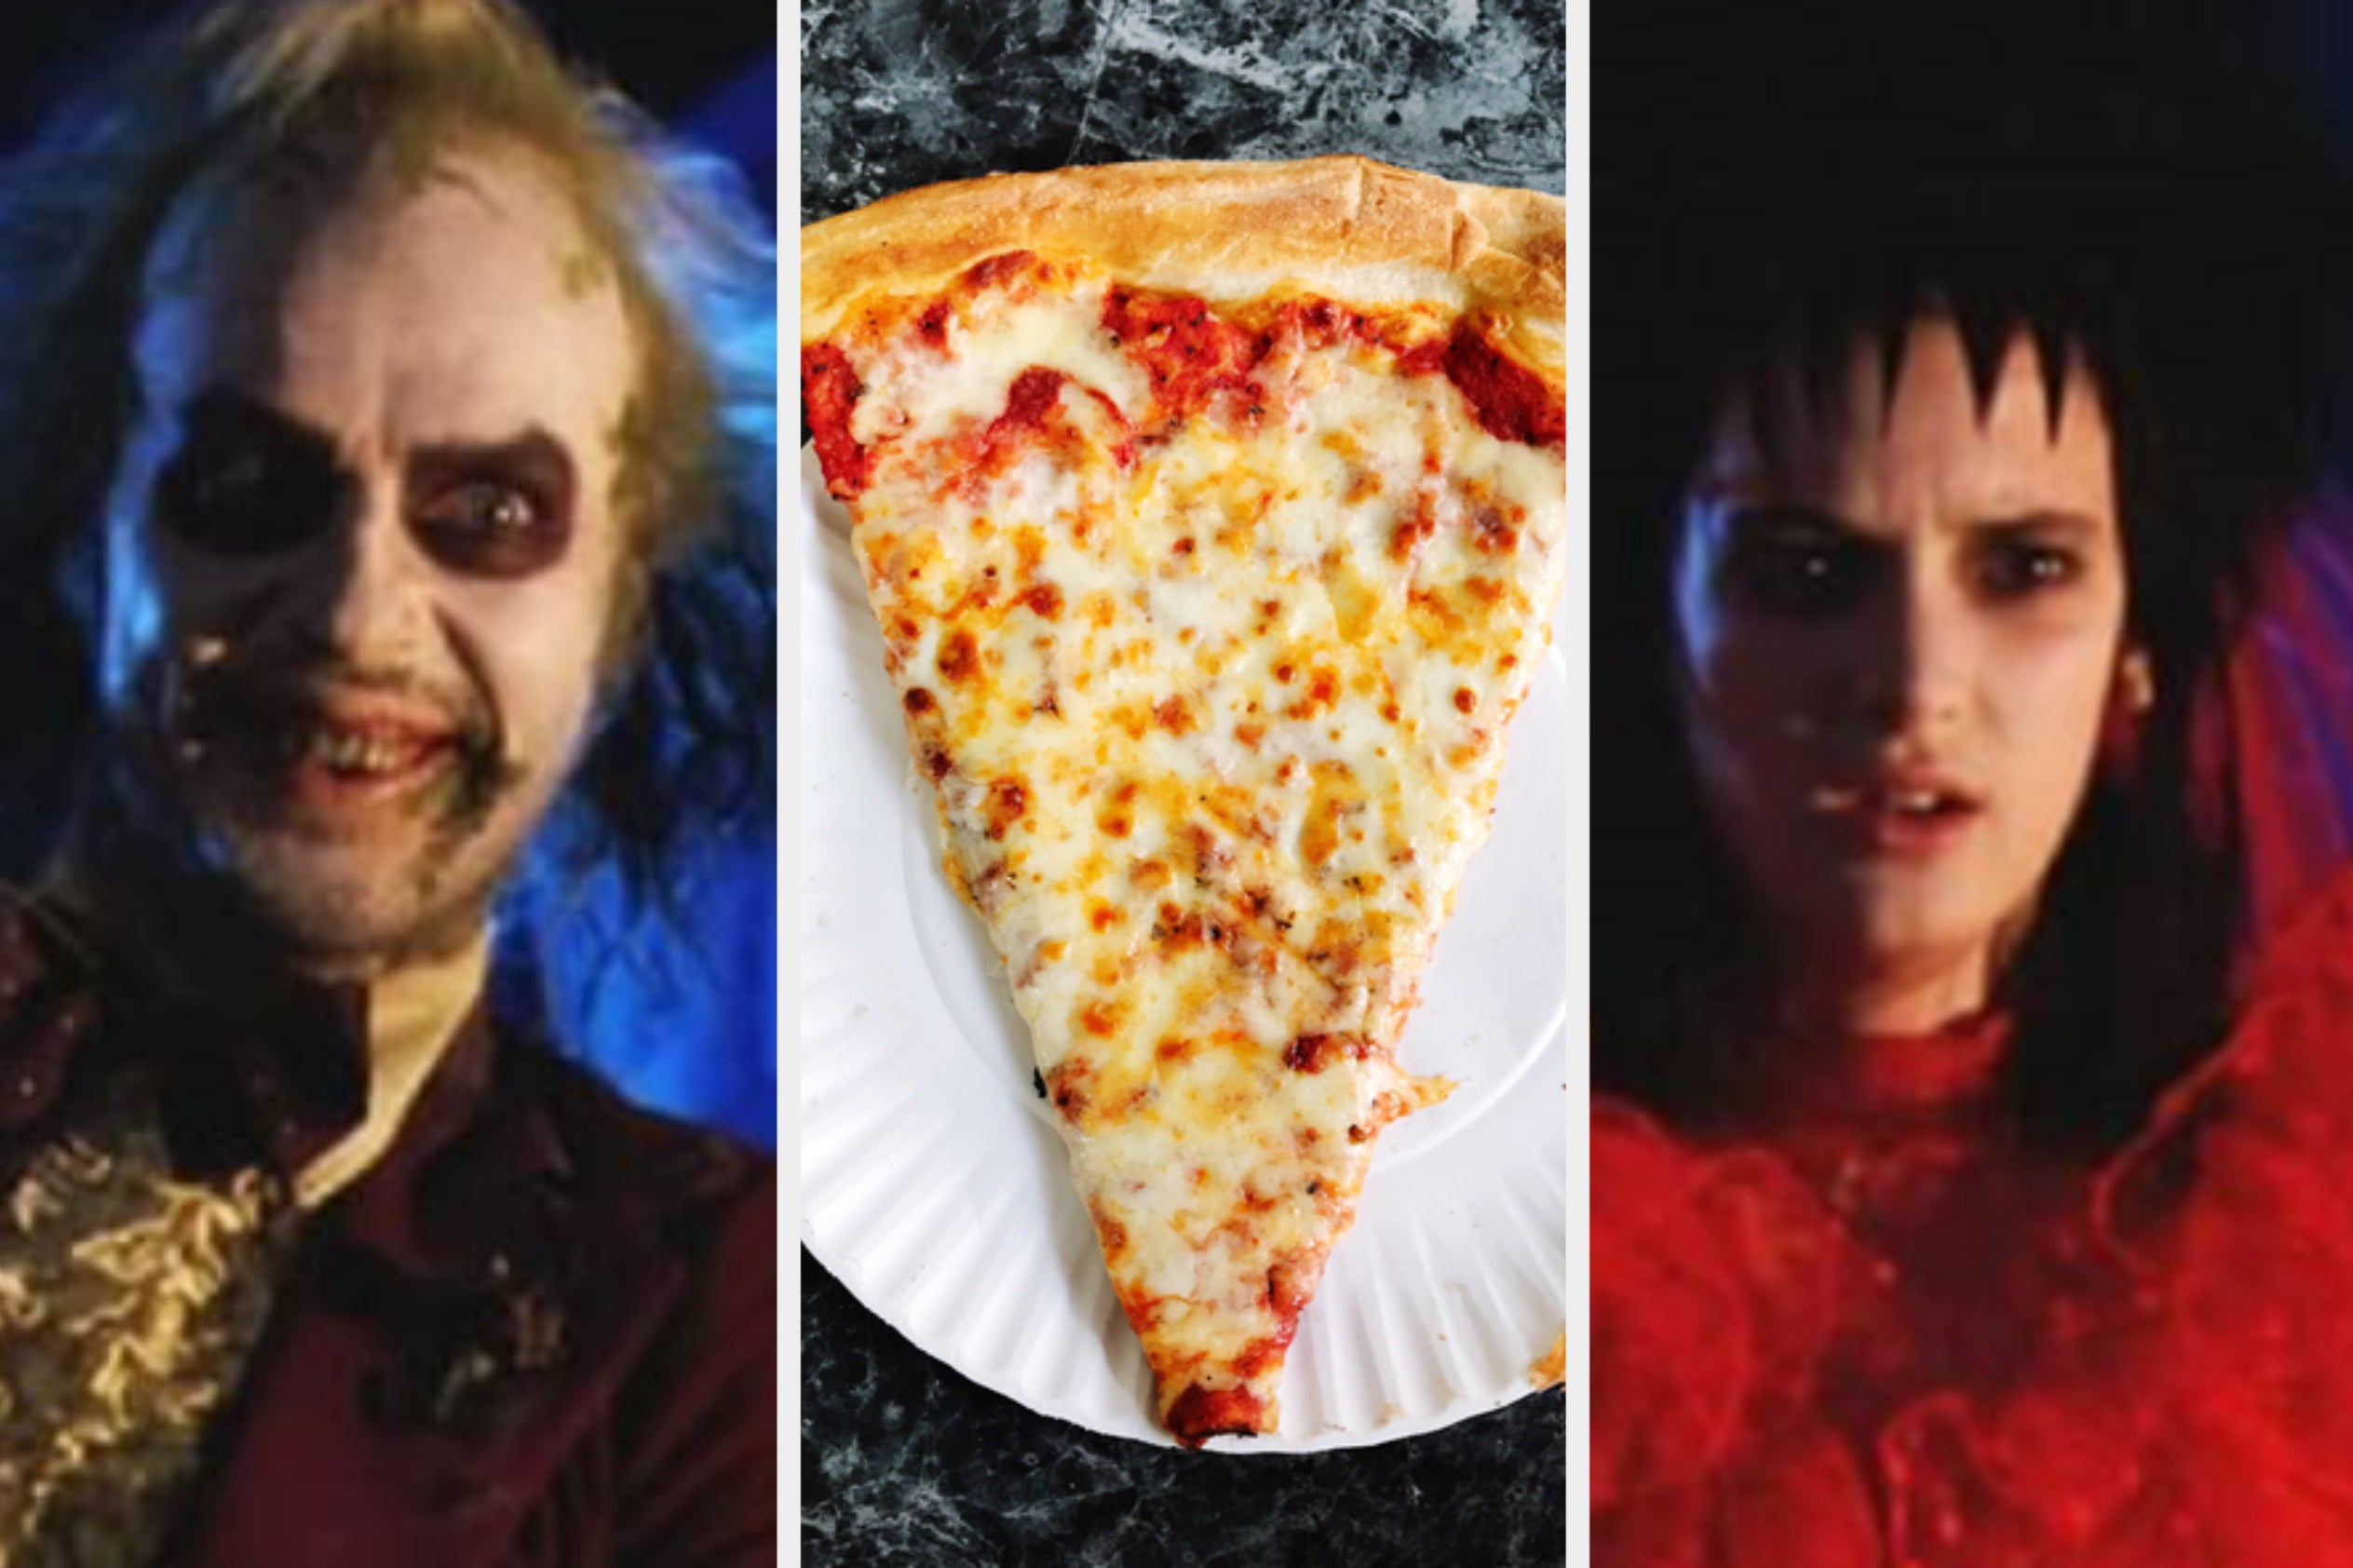 Choose These Sweet And Savory Food Dishes To Reveal If You're More Beetlejuice Or Lydia